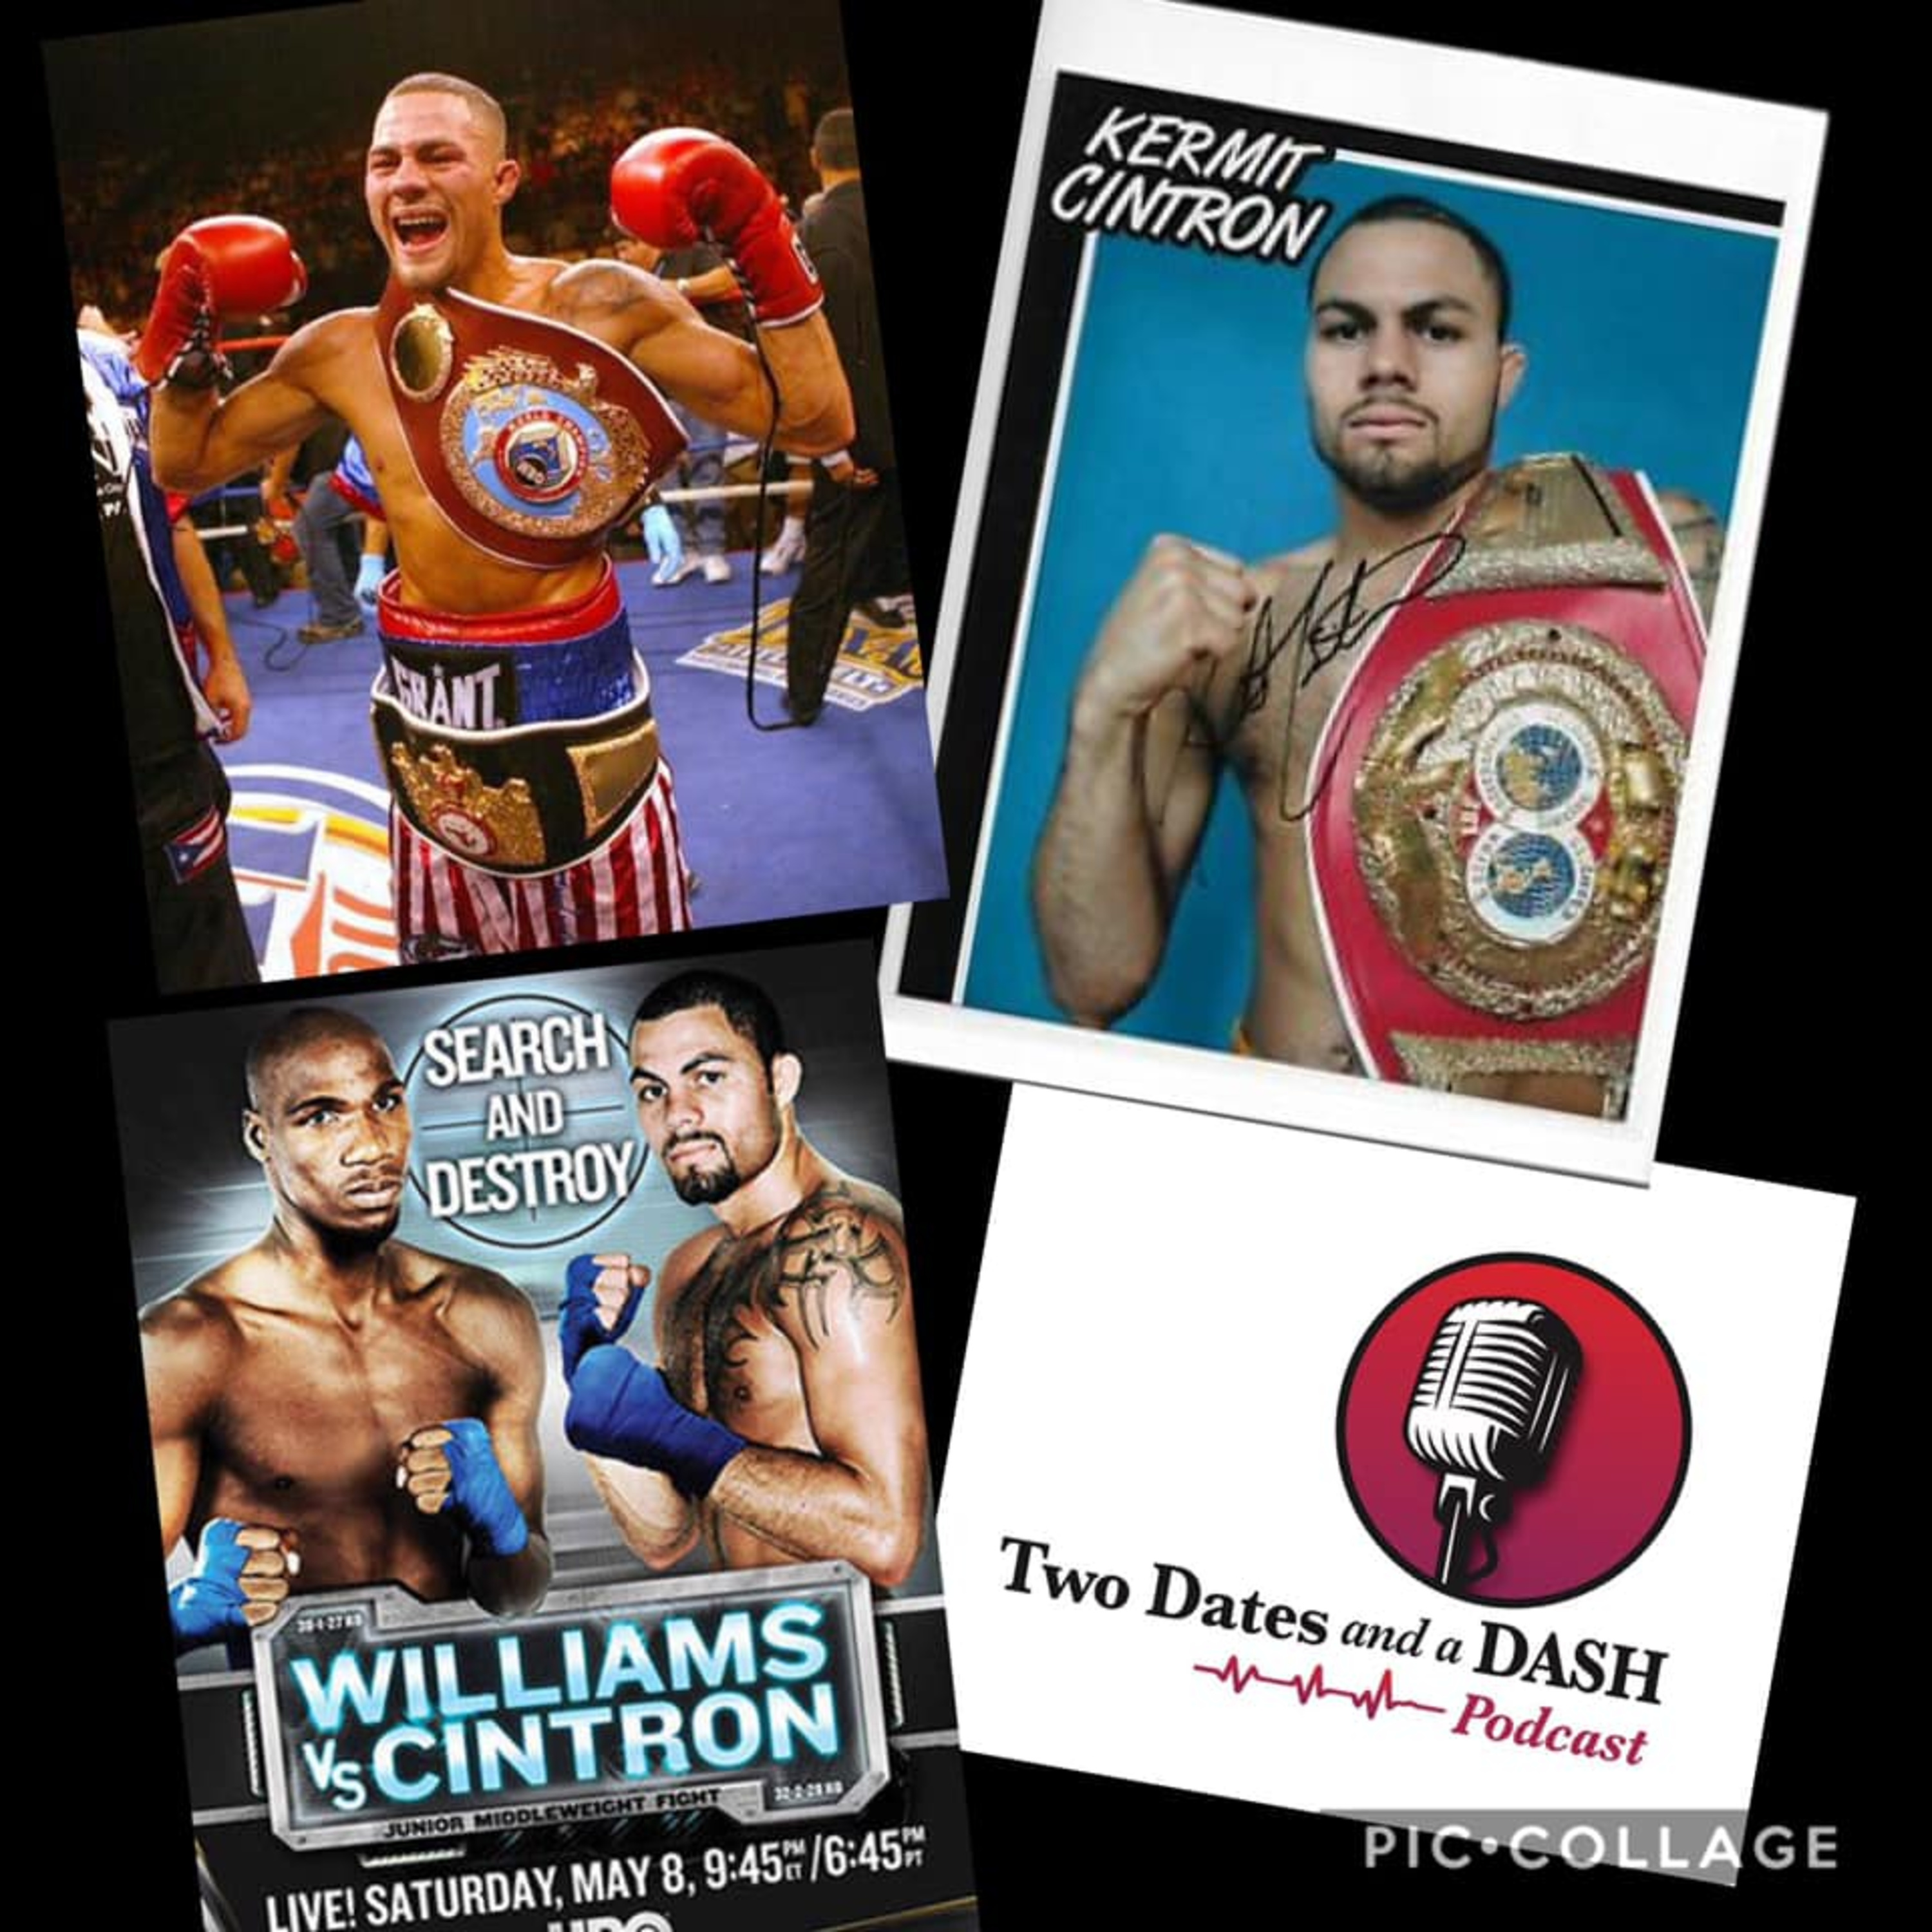 Two Dates and a Dash Podcast Episode 49: Former World Champion Boxing Legend, Kermit Cintron.